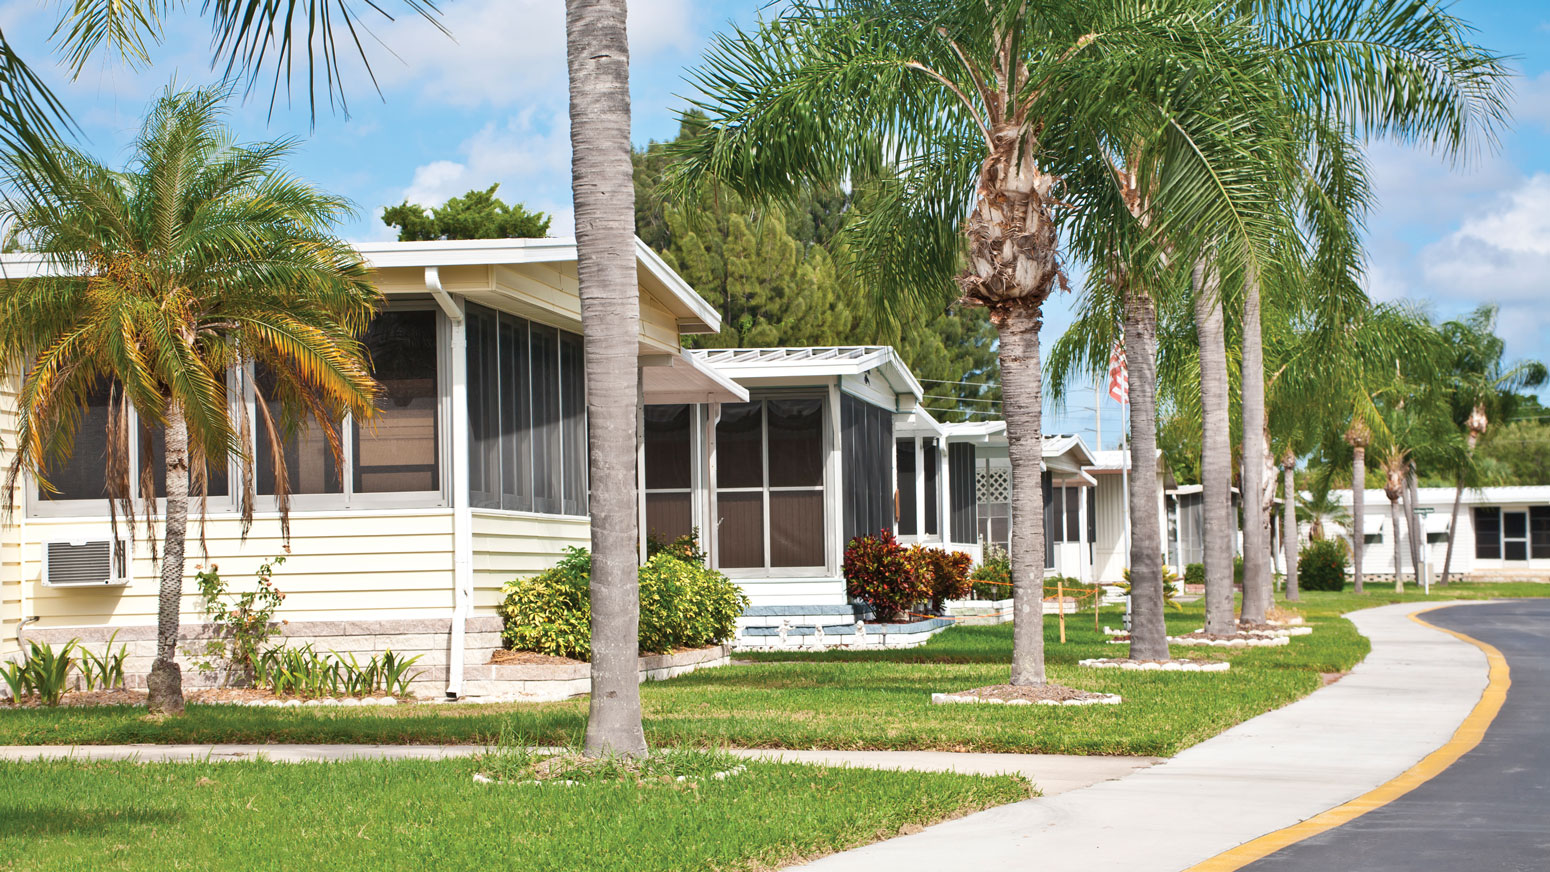 More managers make move to mobile homes